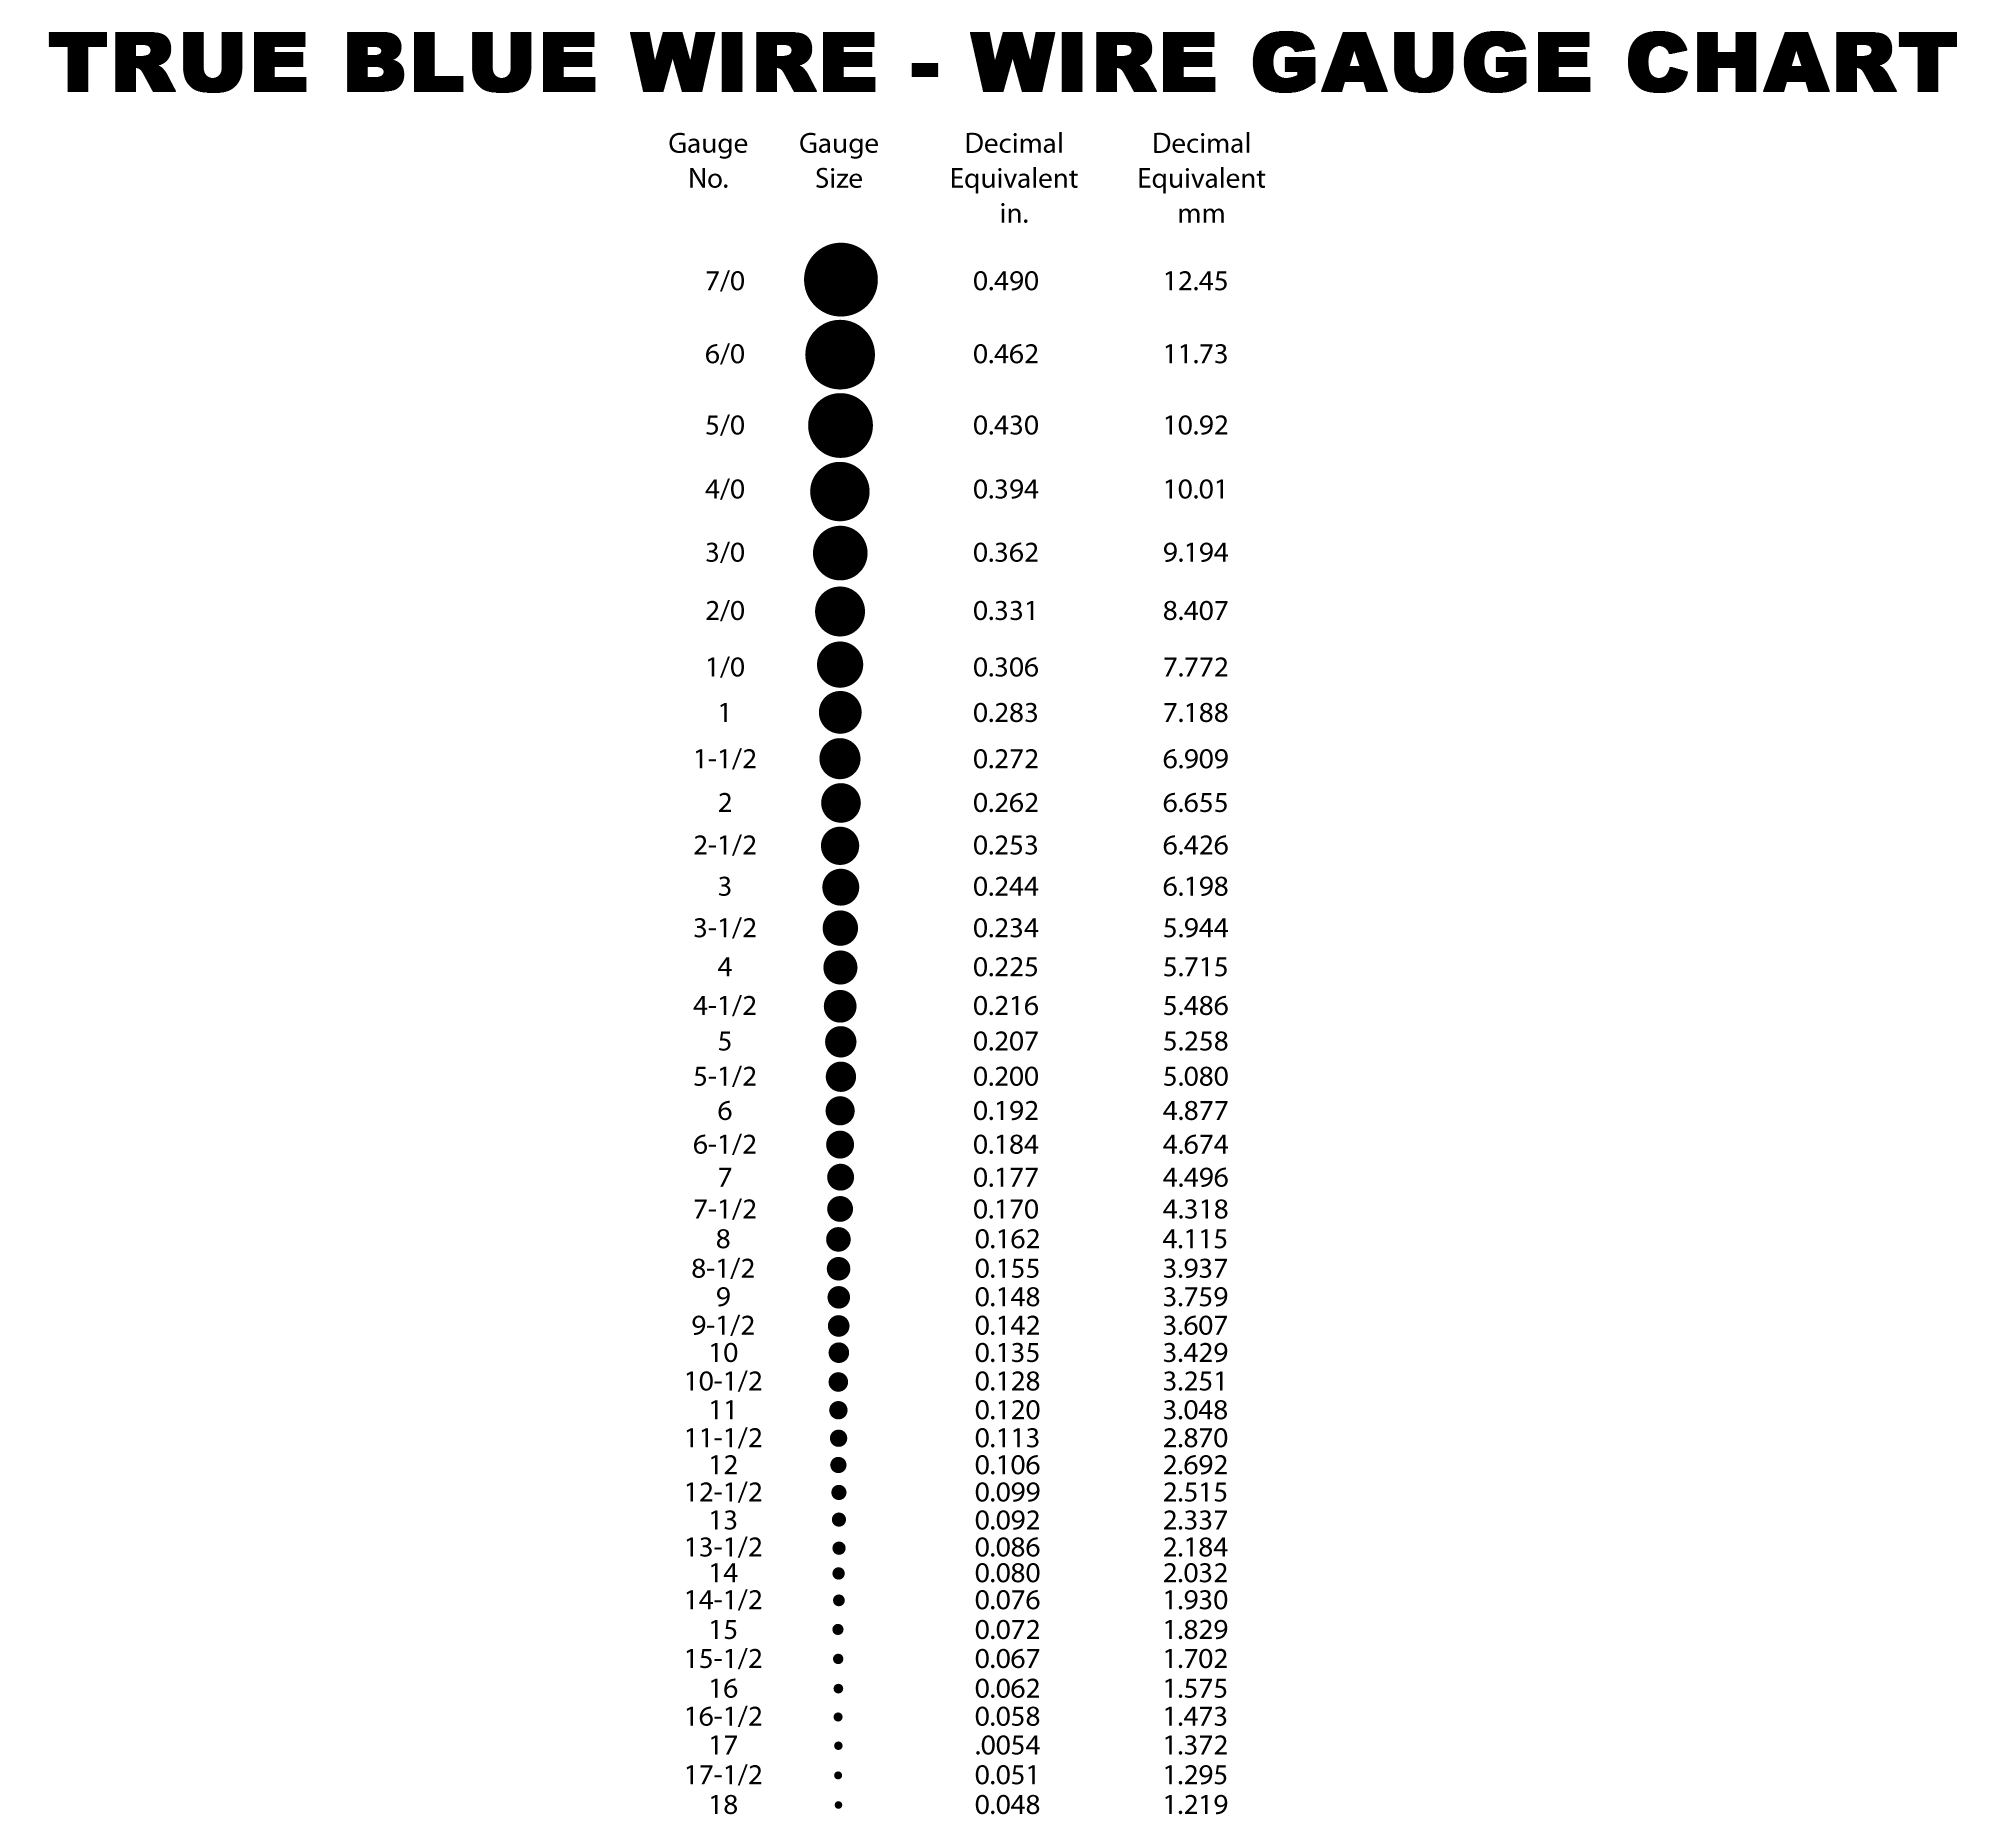 12 Gauge Wire Amp Rating Chart